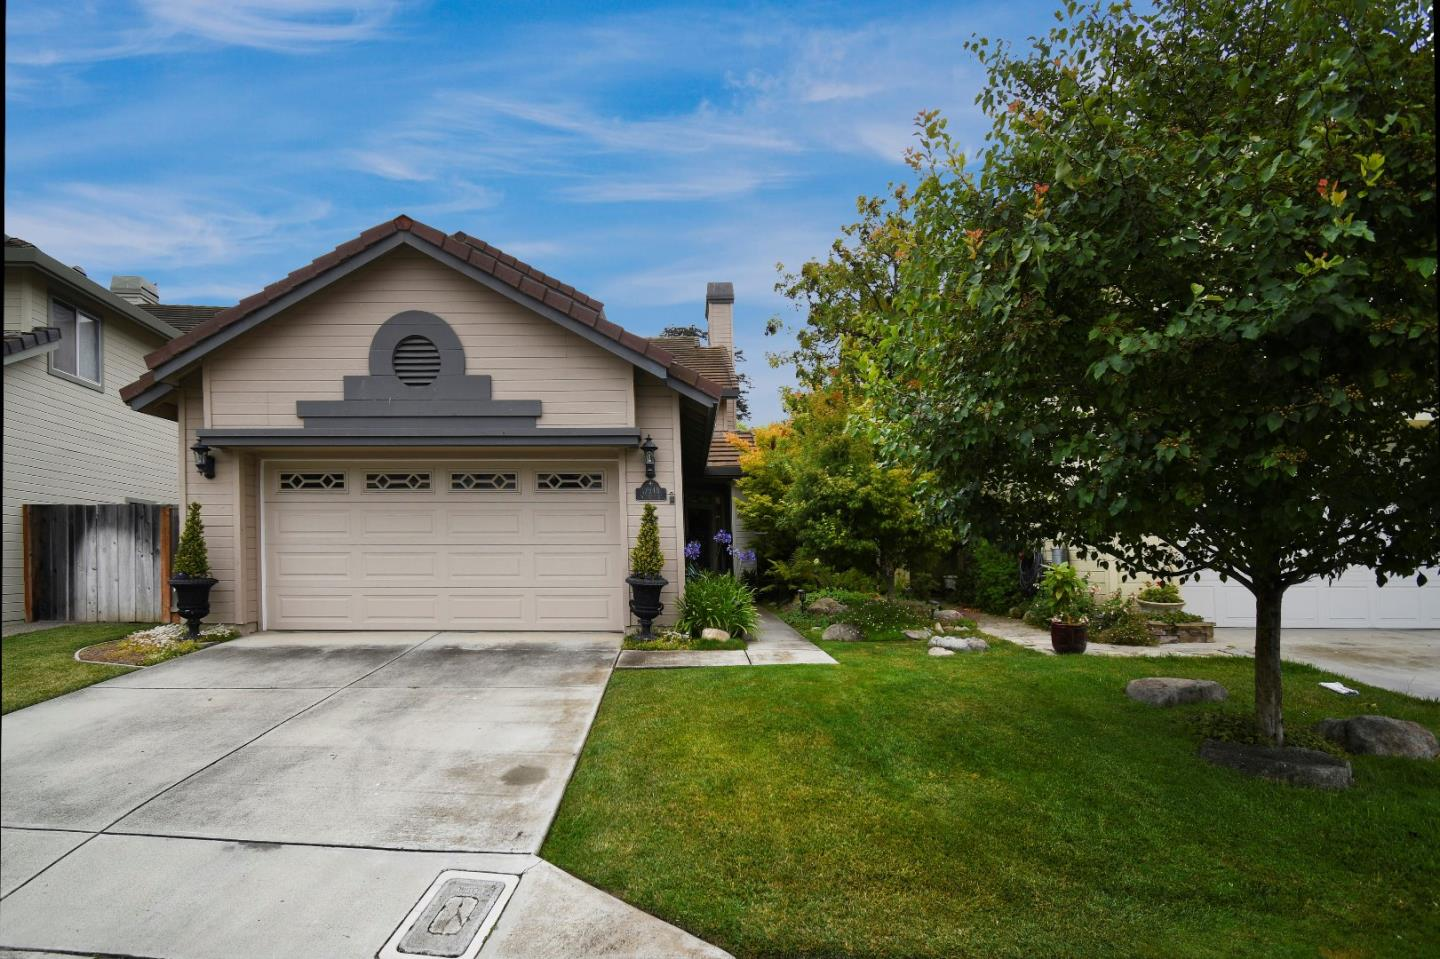 Norm Yop specializes in Salinas CA Homes, Real Estate, and